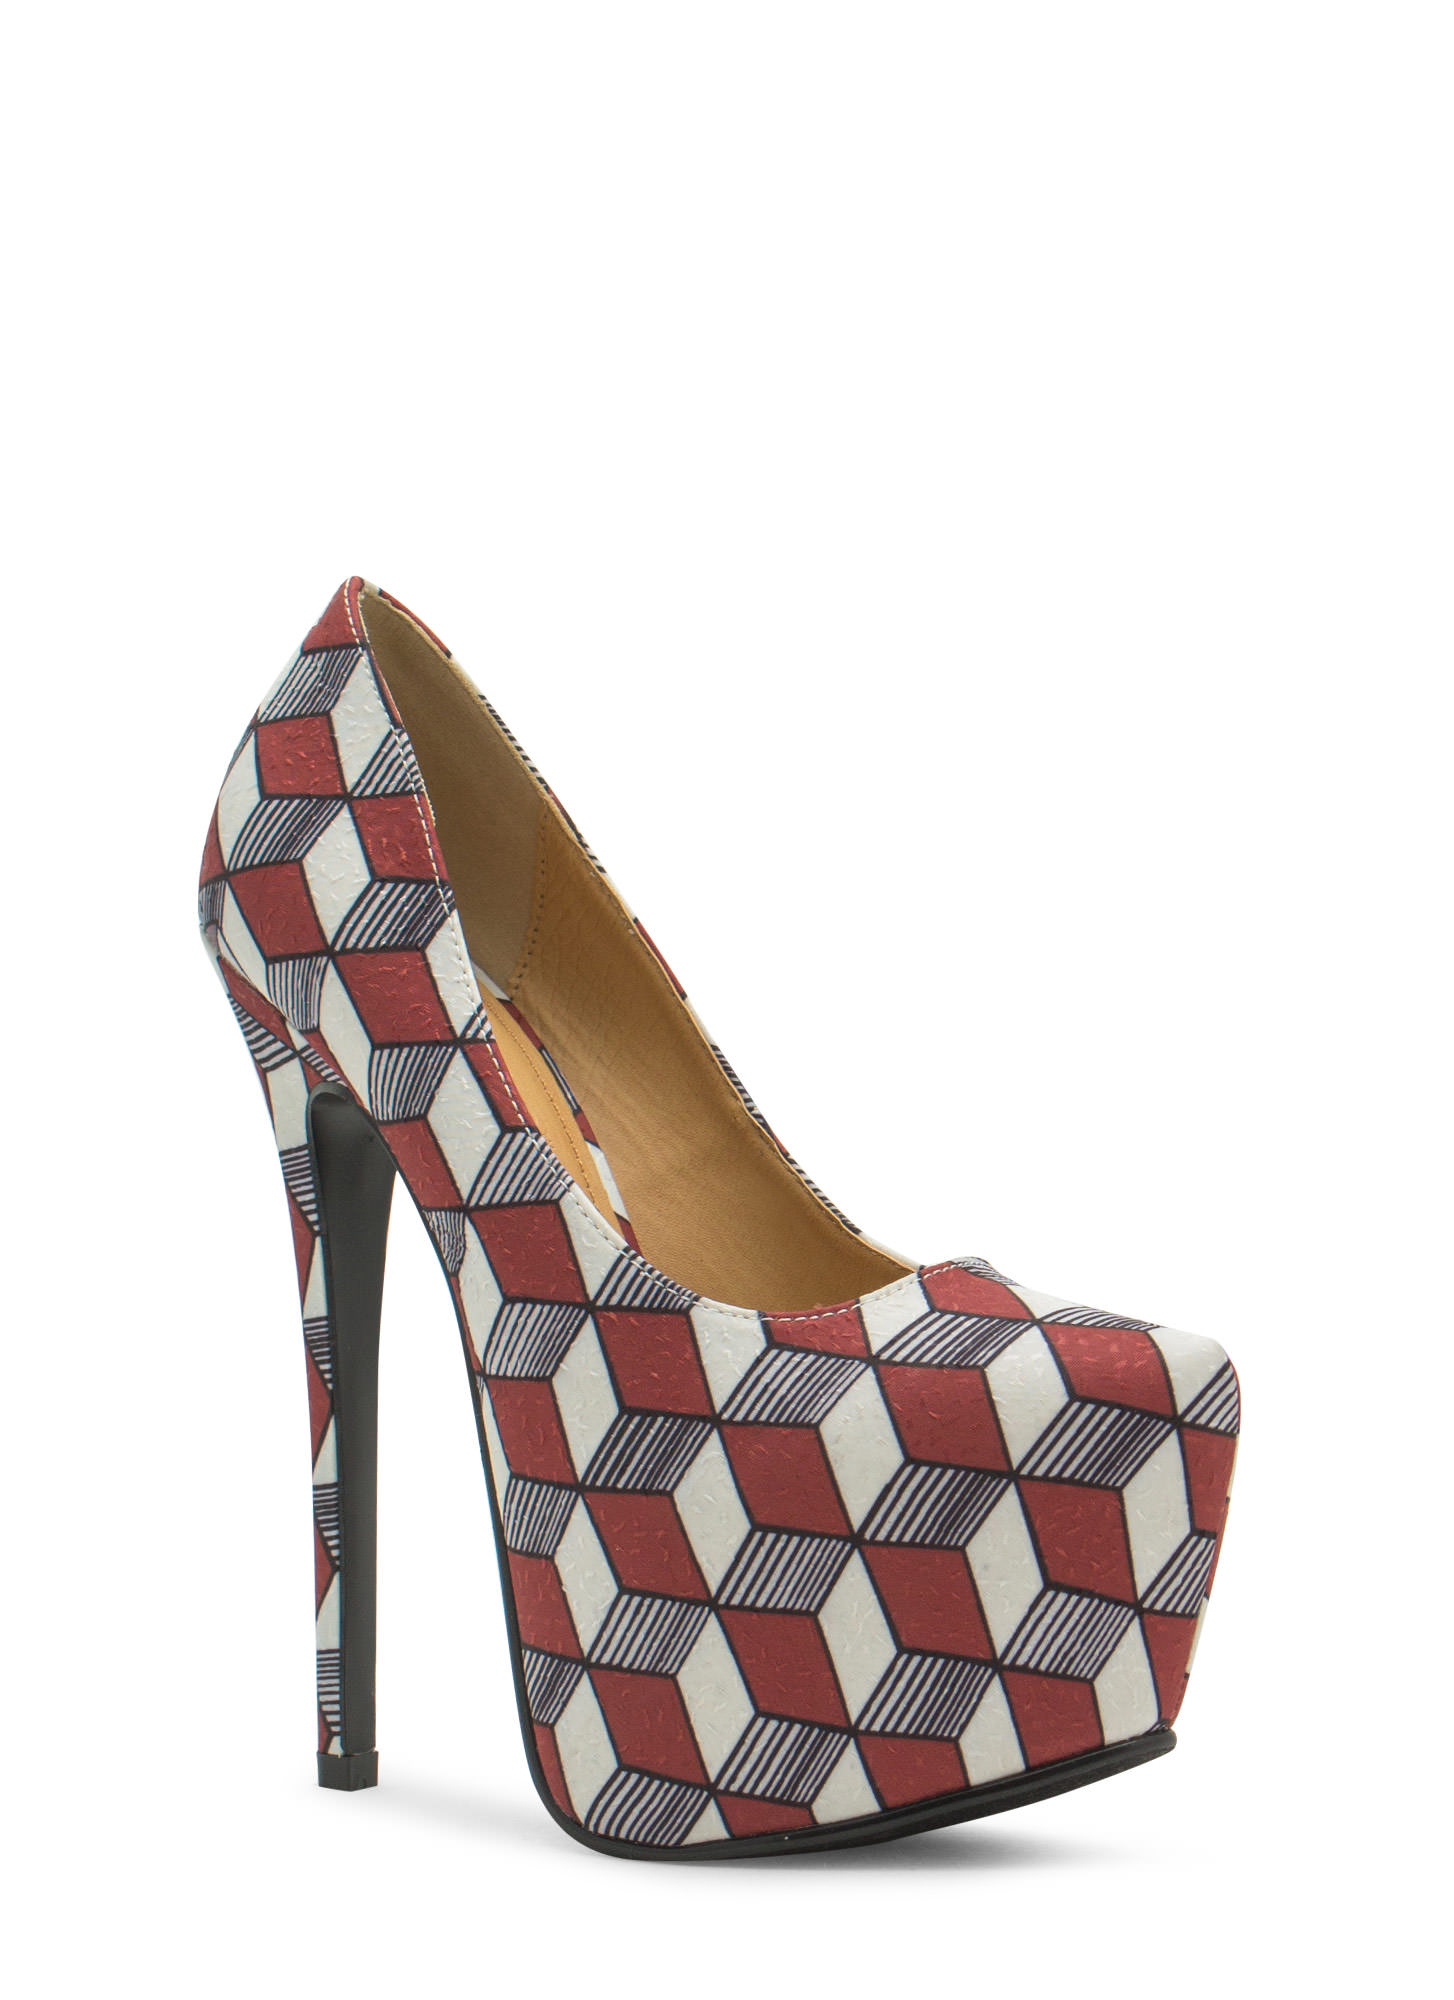 Three Dimensional Geo Platform Heels BROWN (Final Sale)